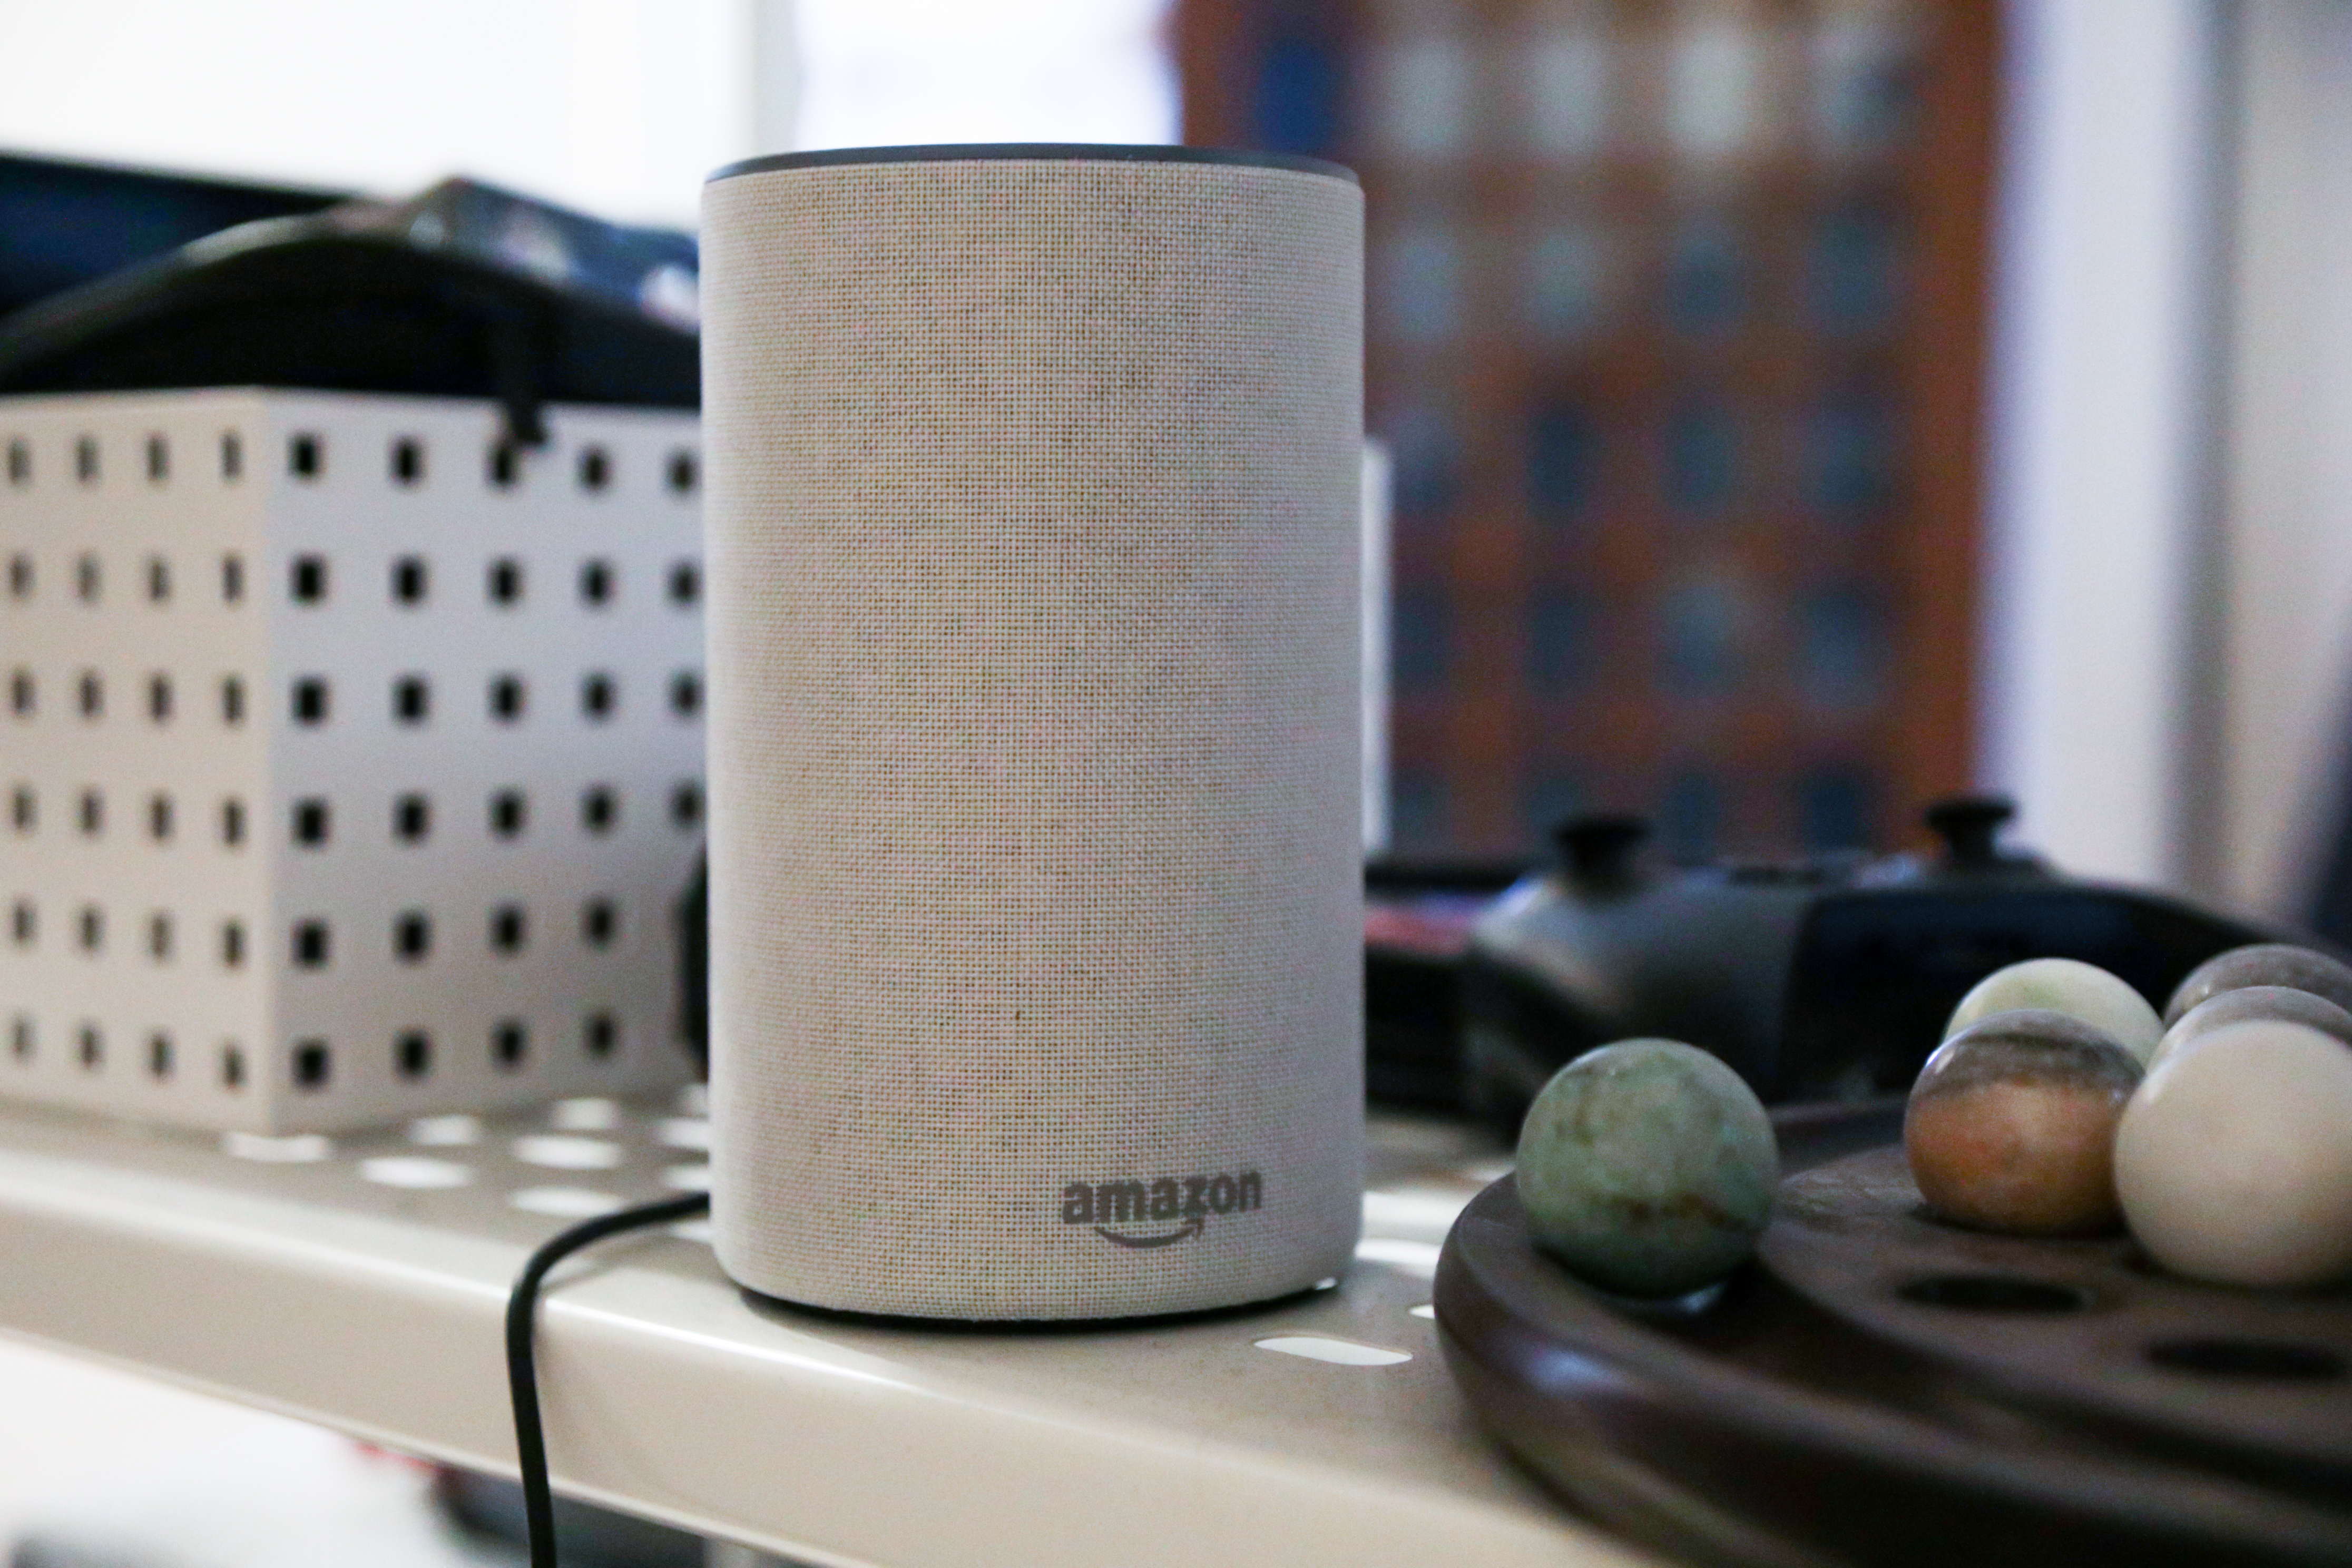 Alexa gains eight new voices - but they're for developers for now